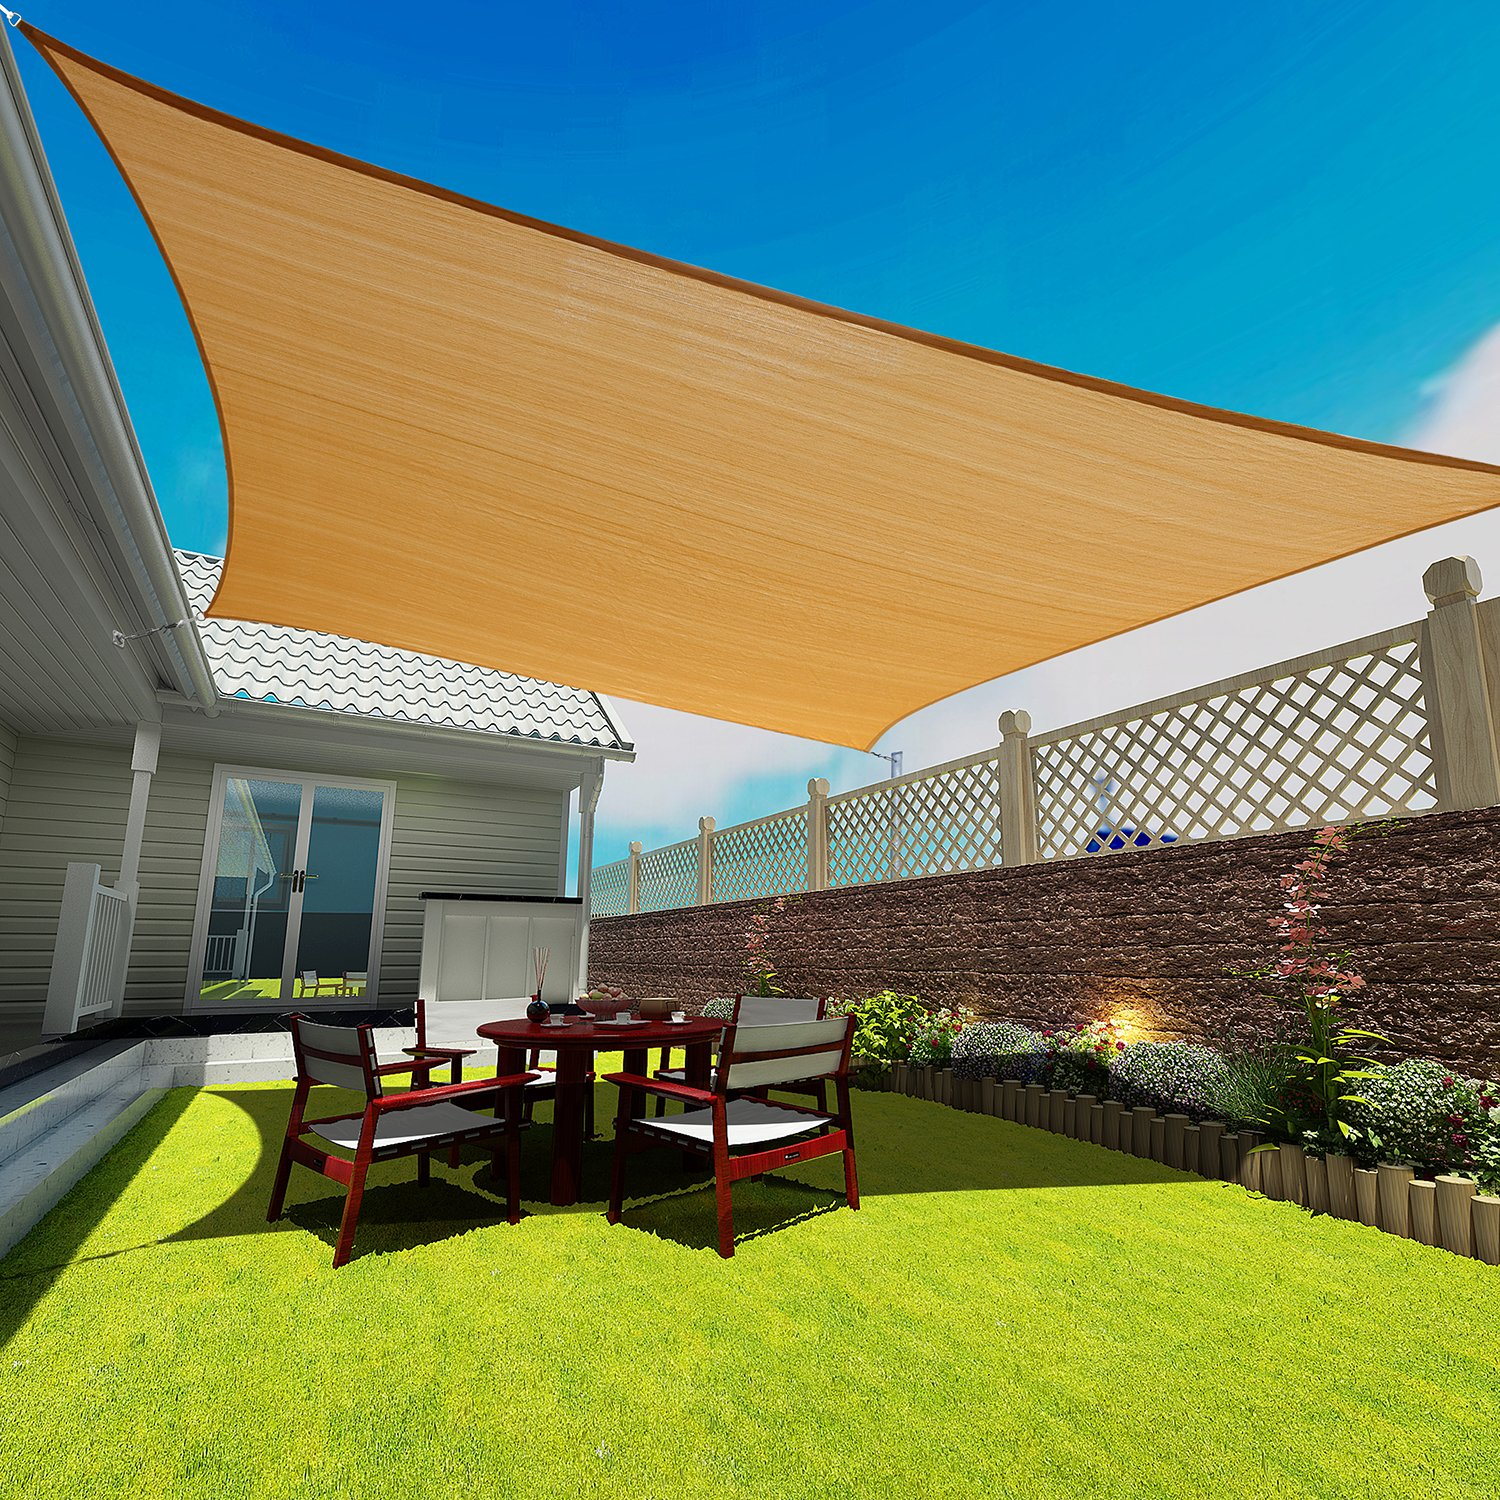 Coconut Rectangle Sun Shade Sail 16 X 20 Ft UV Block Sunshade Canopy Awning Cover for Outdoor Patio Deck Garden Lawn Yard (Sand Color), 16' x 20' by Coconut (Image #1)